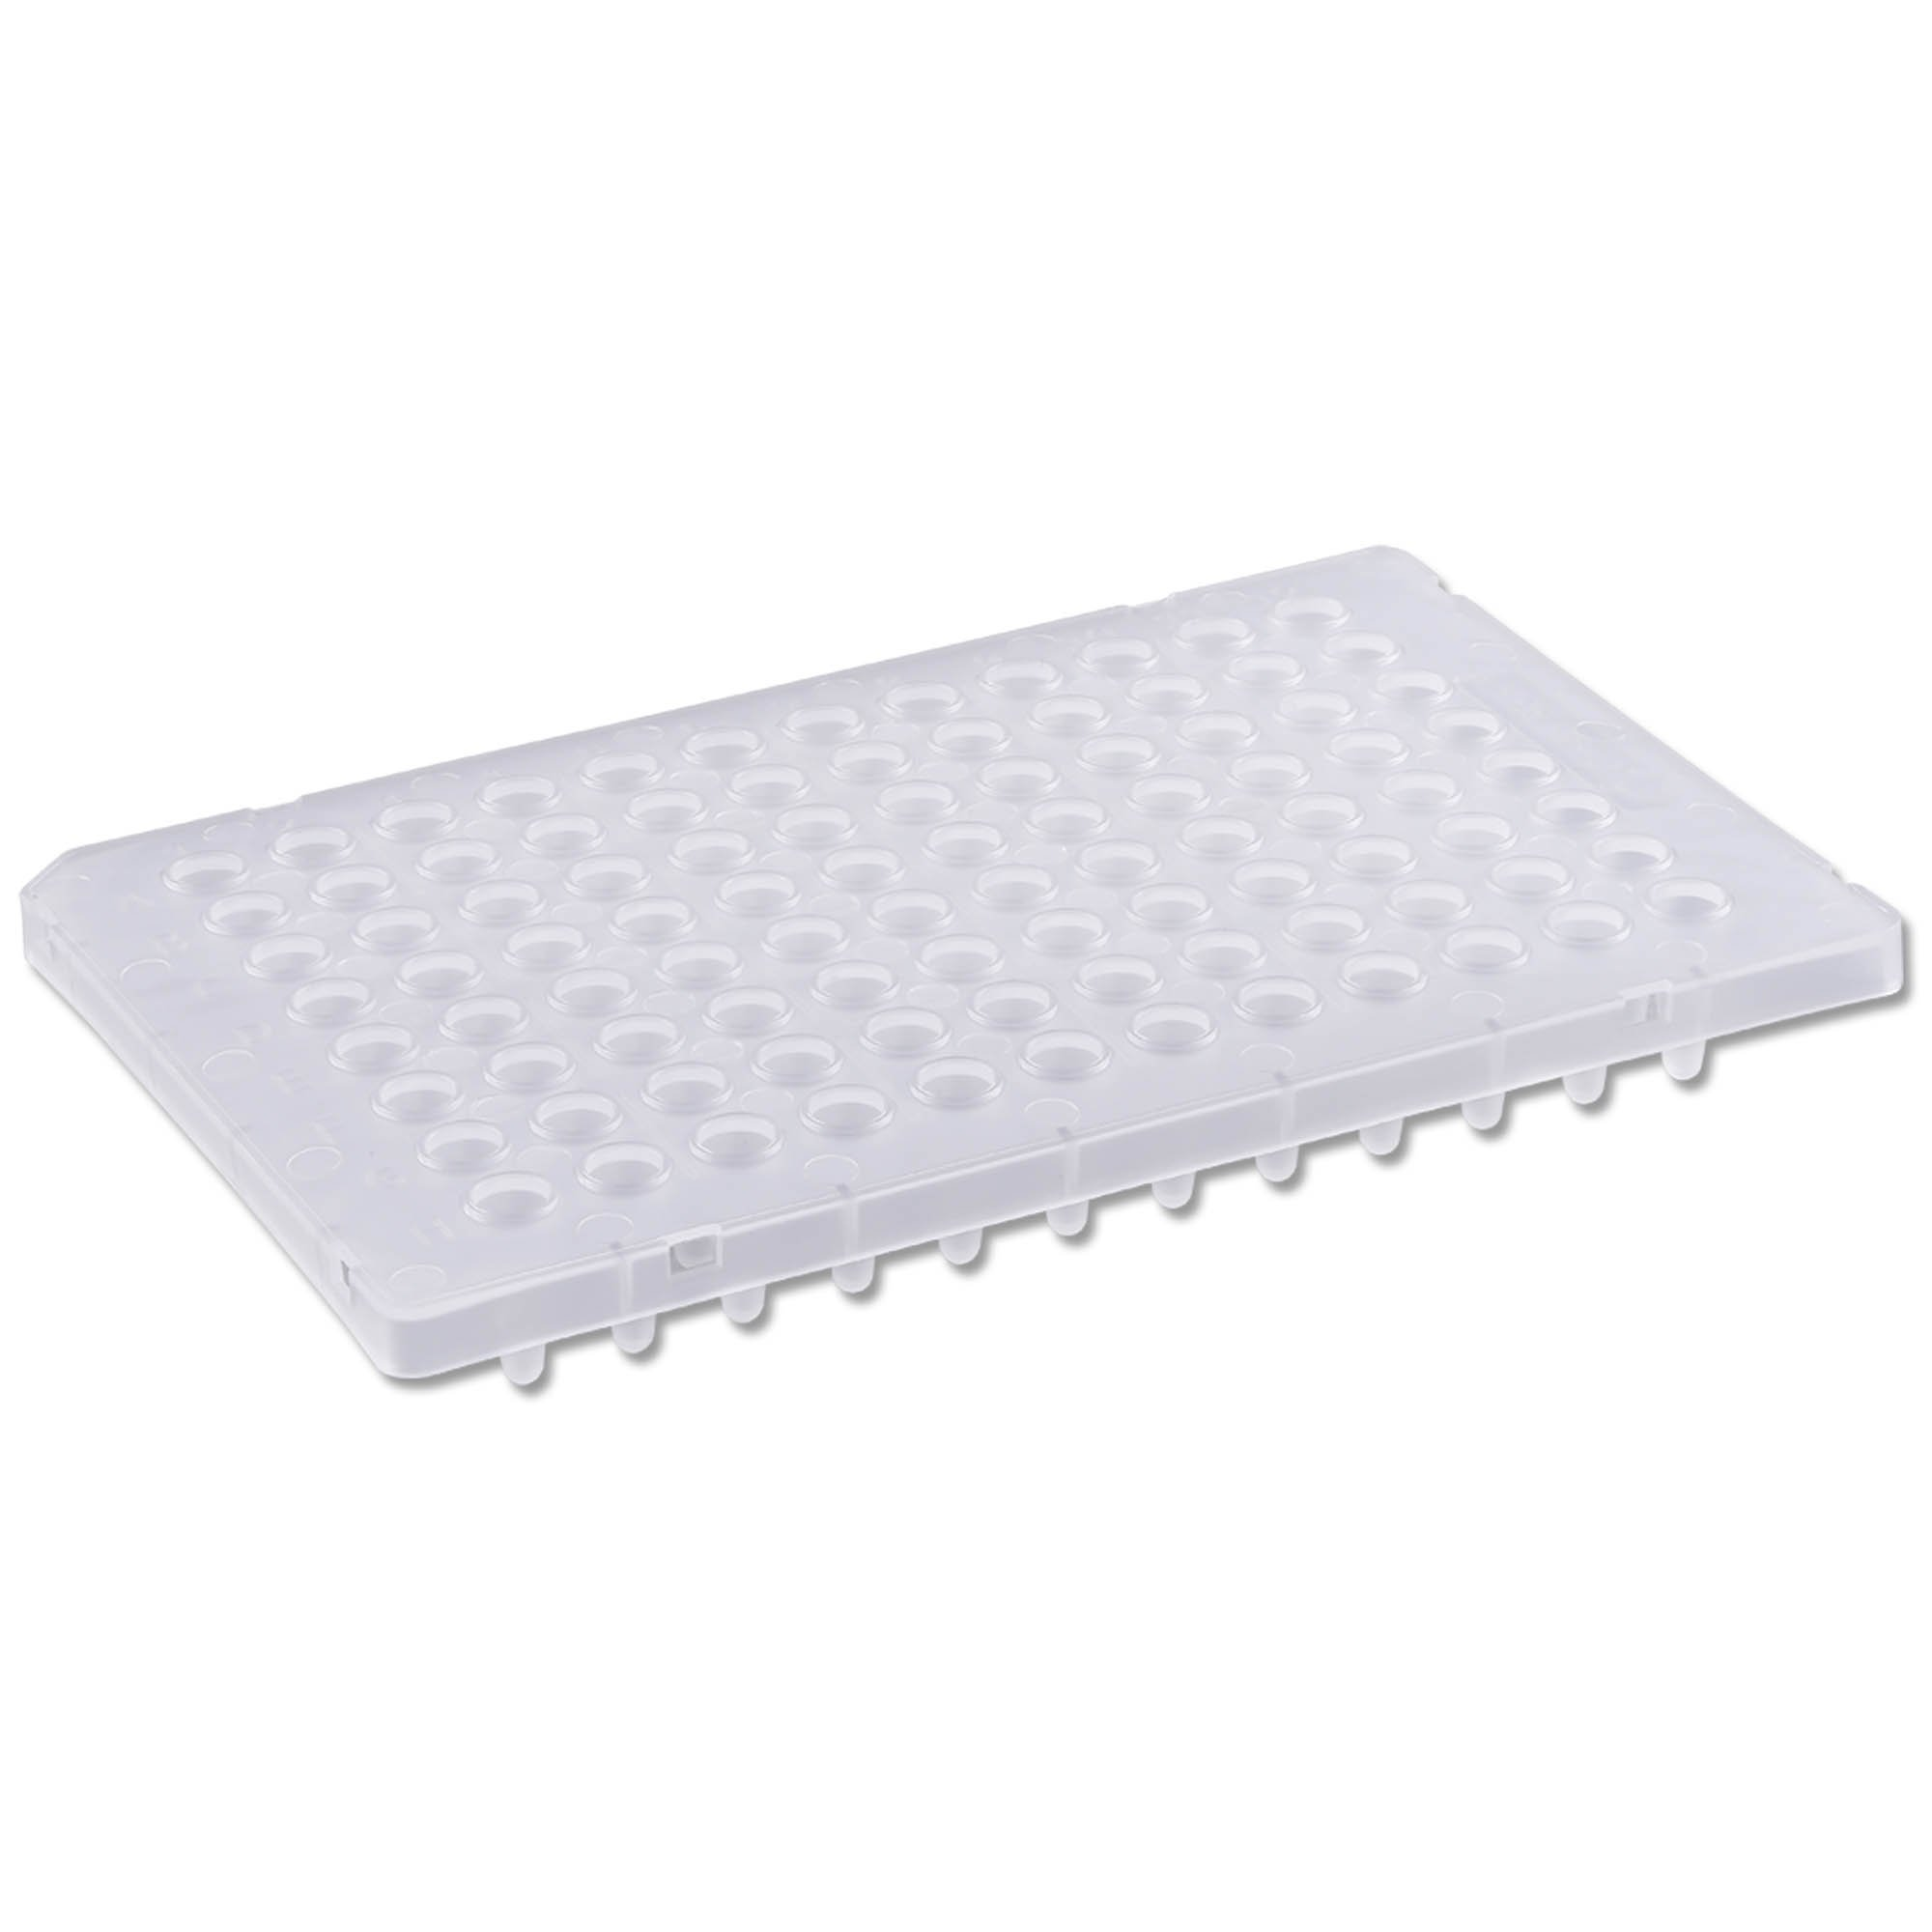 PureAmp Low Profile/Fast 96-Well x 0.1mL PCR Plates - Semi Skirted, Natural (10 Packs of 50 per Pack) - ON BACKORDER UNTIL 6/21/2021